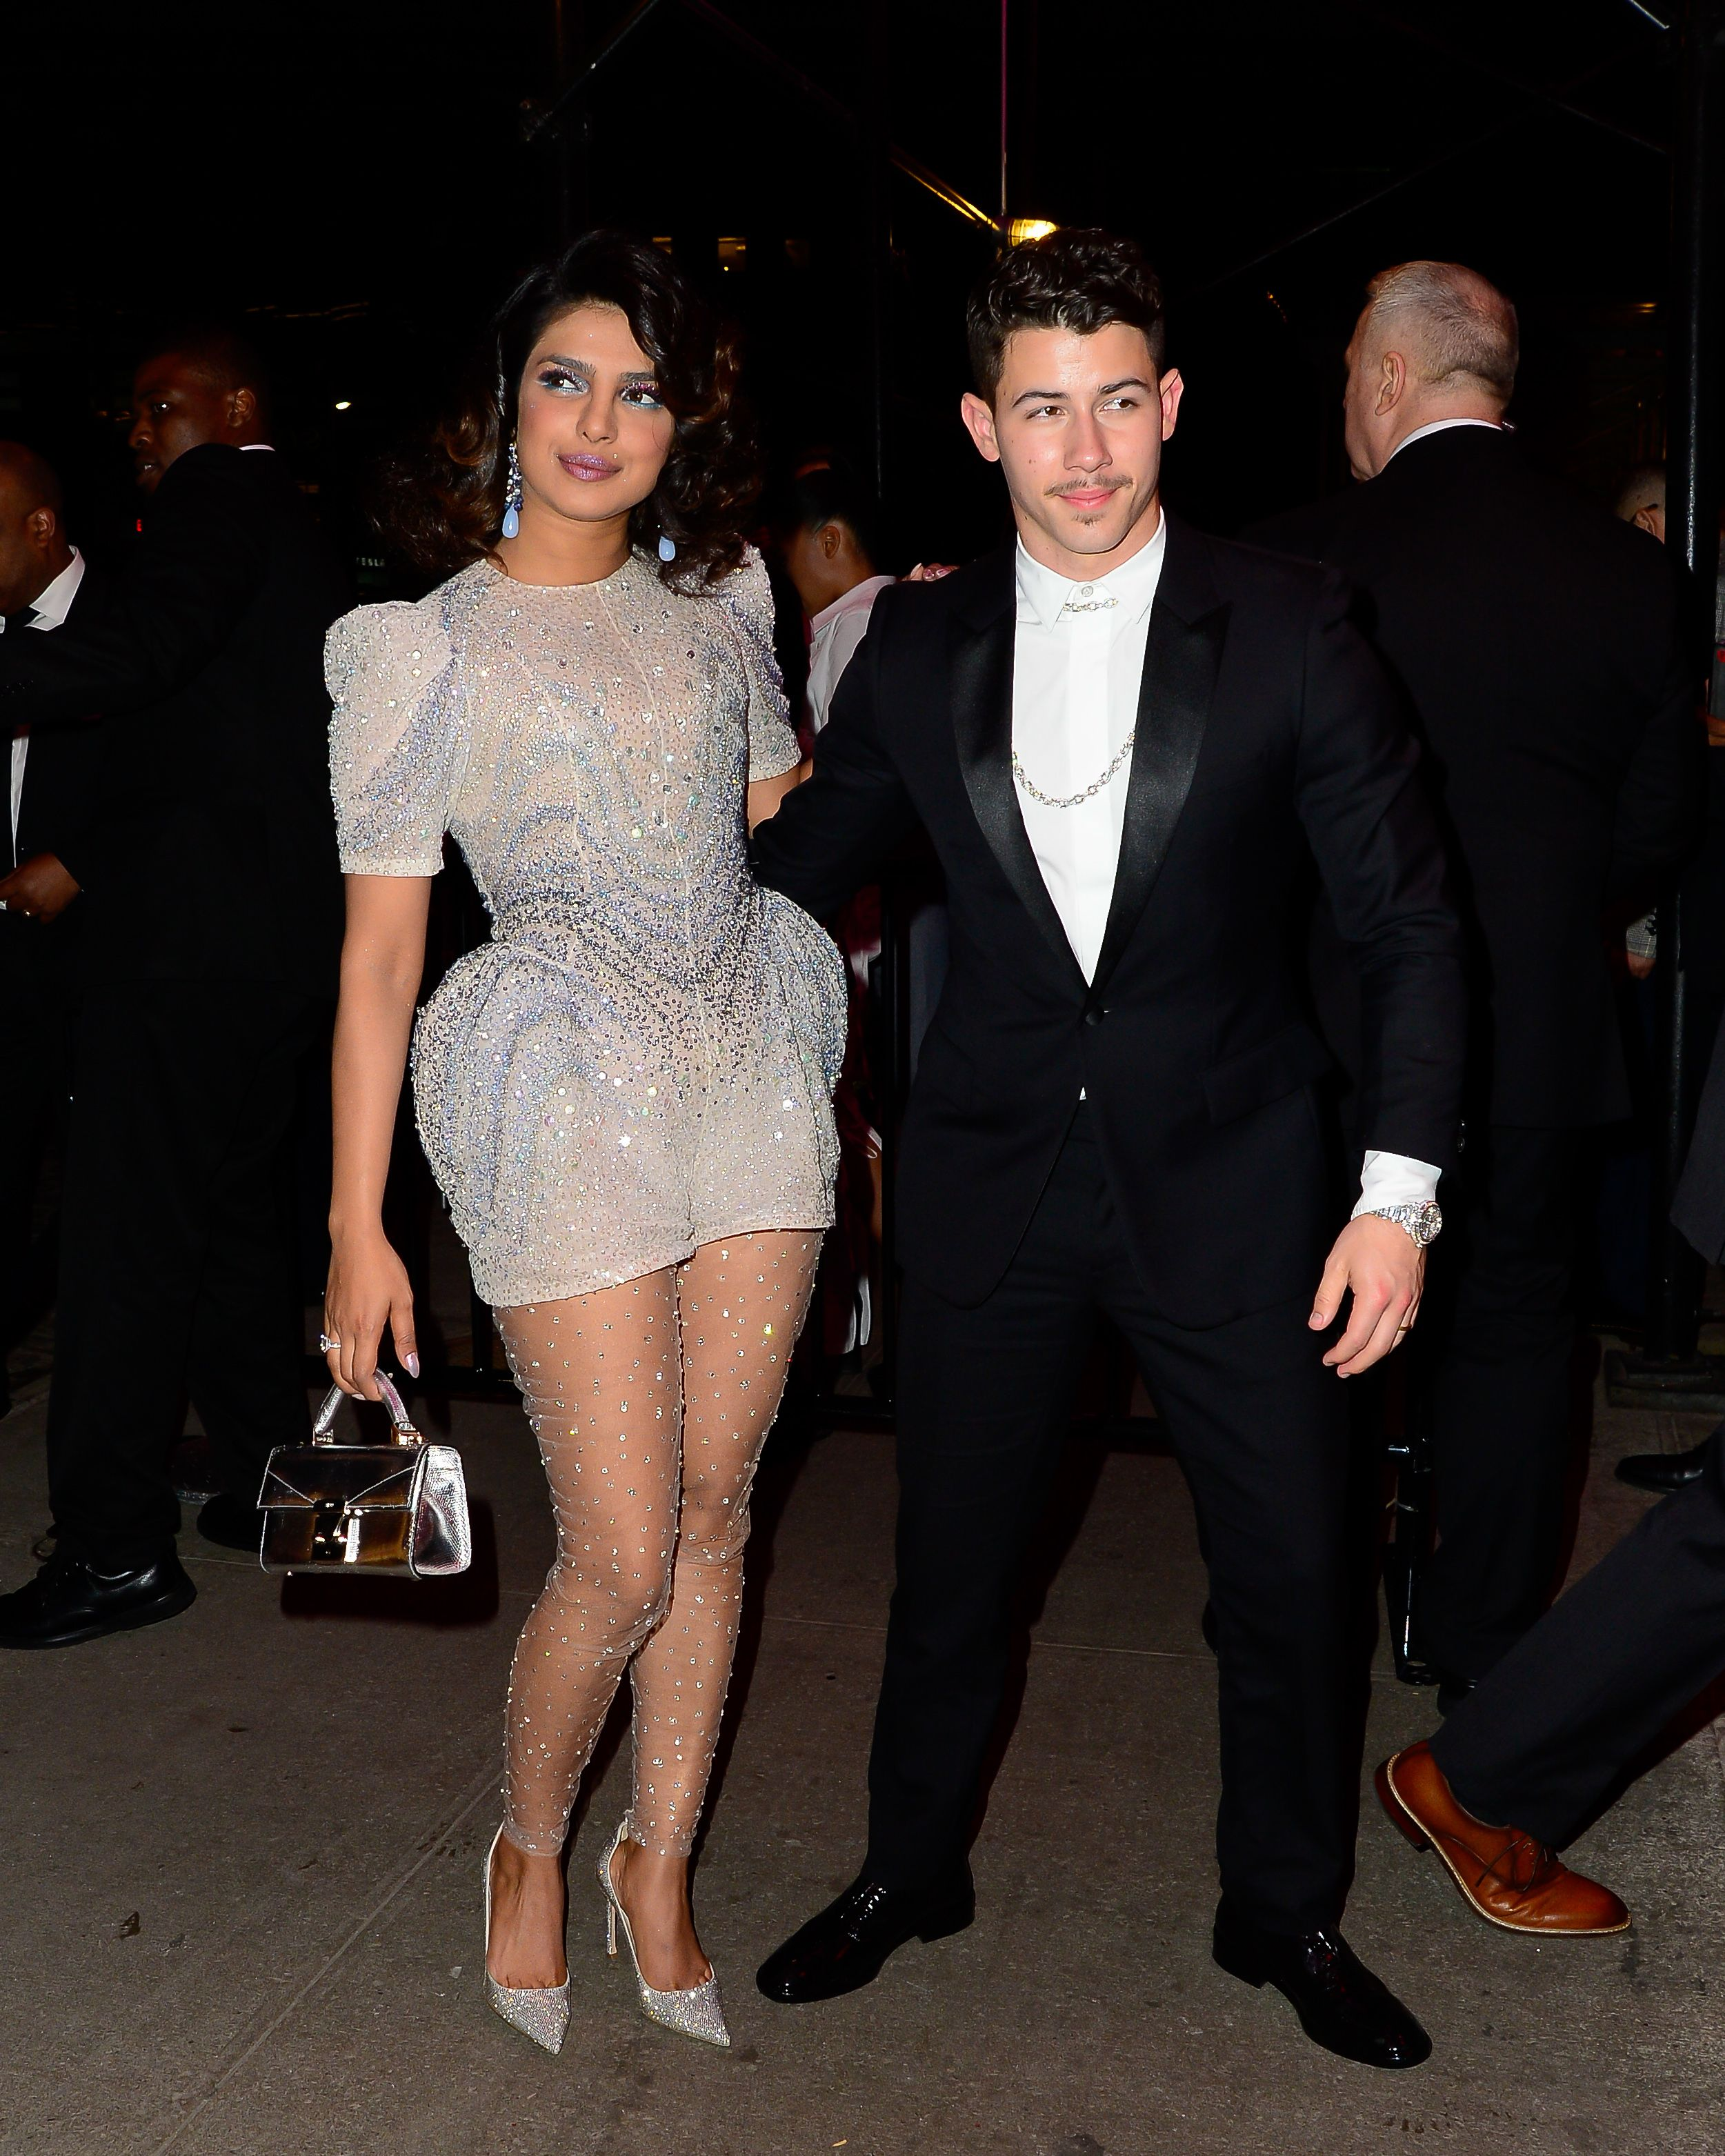 Priyanka Chopra and Nick Jonas The couple hit the Met Gala carpet looking regal as ever, then turned it up for their after party look.